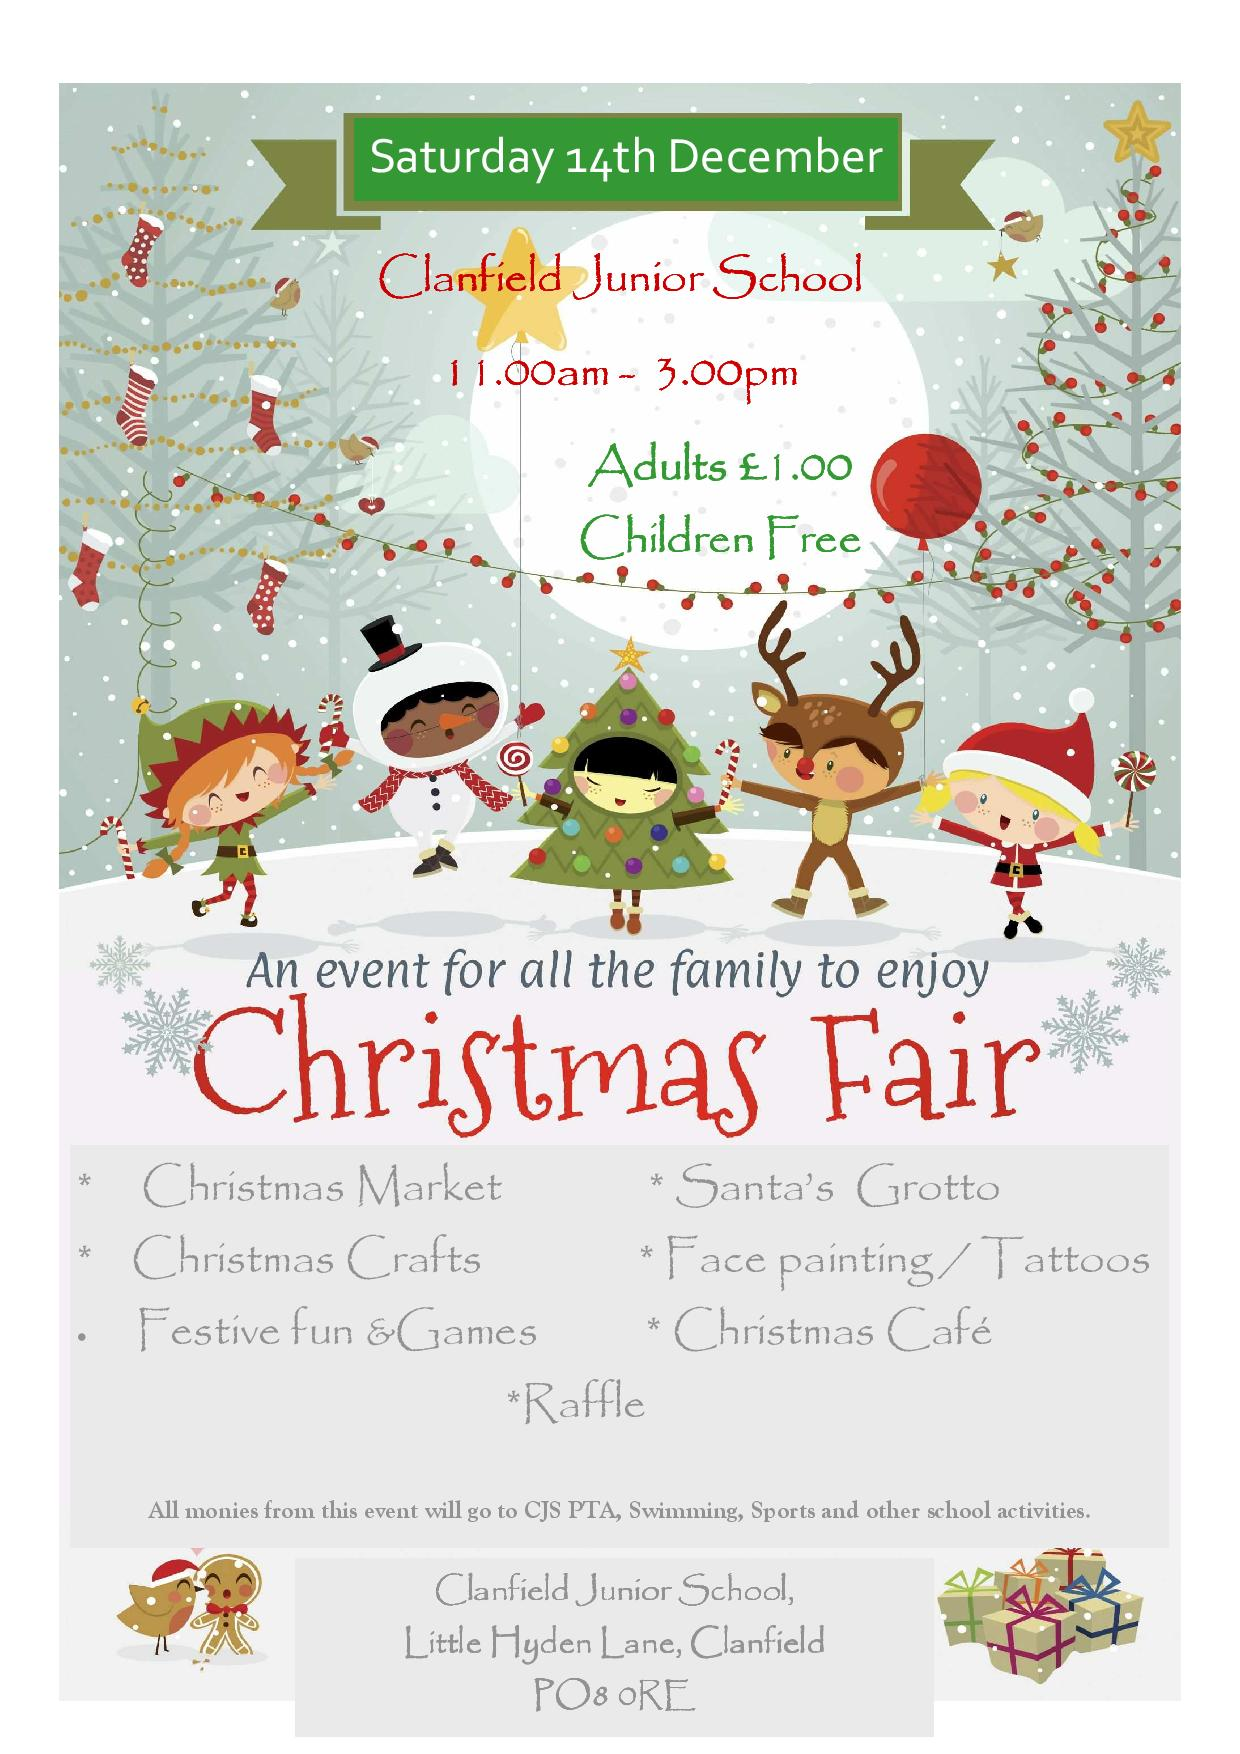 Christmas Fair at Clanfield Junior School